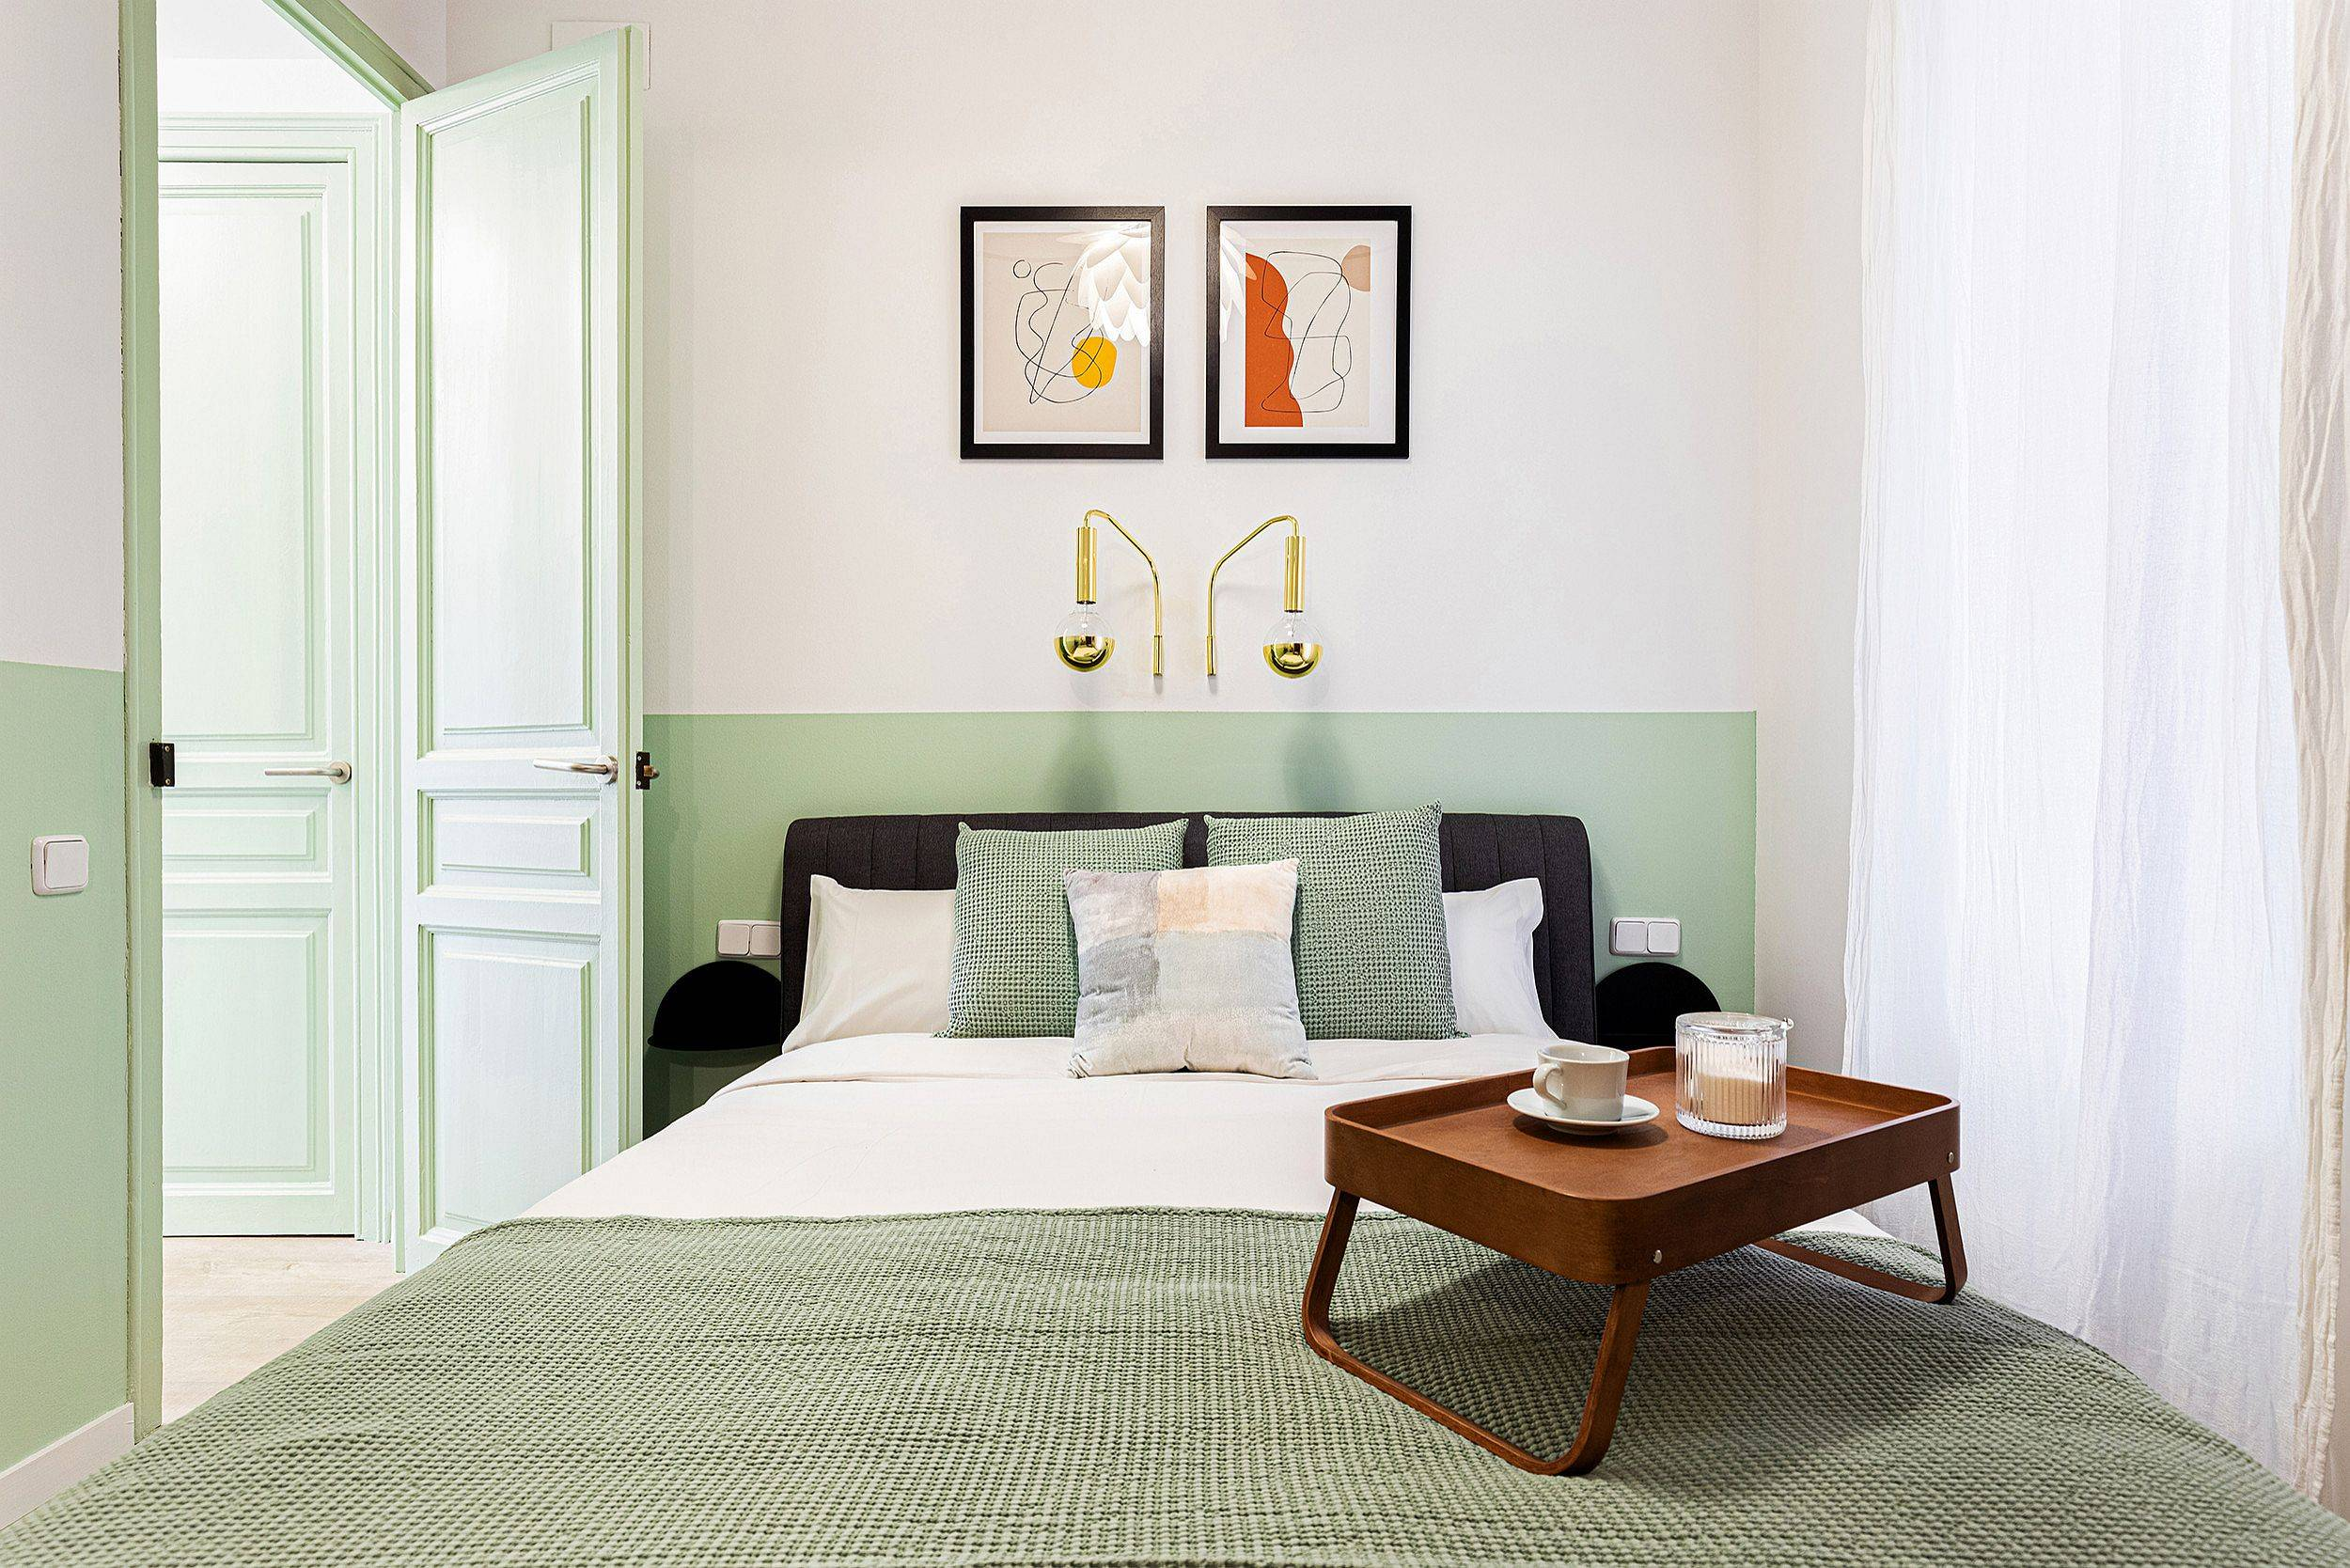 Small-and-stylish-modern-bedroom-in-white-and-pastel-green-is-perfect-for-the-vacation-apartment-23437